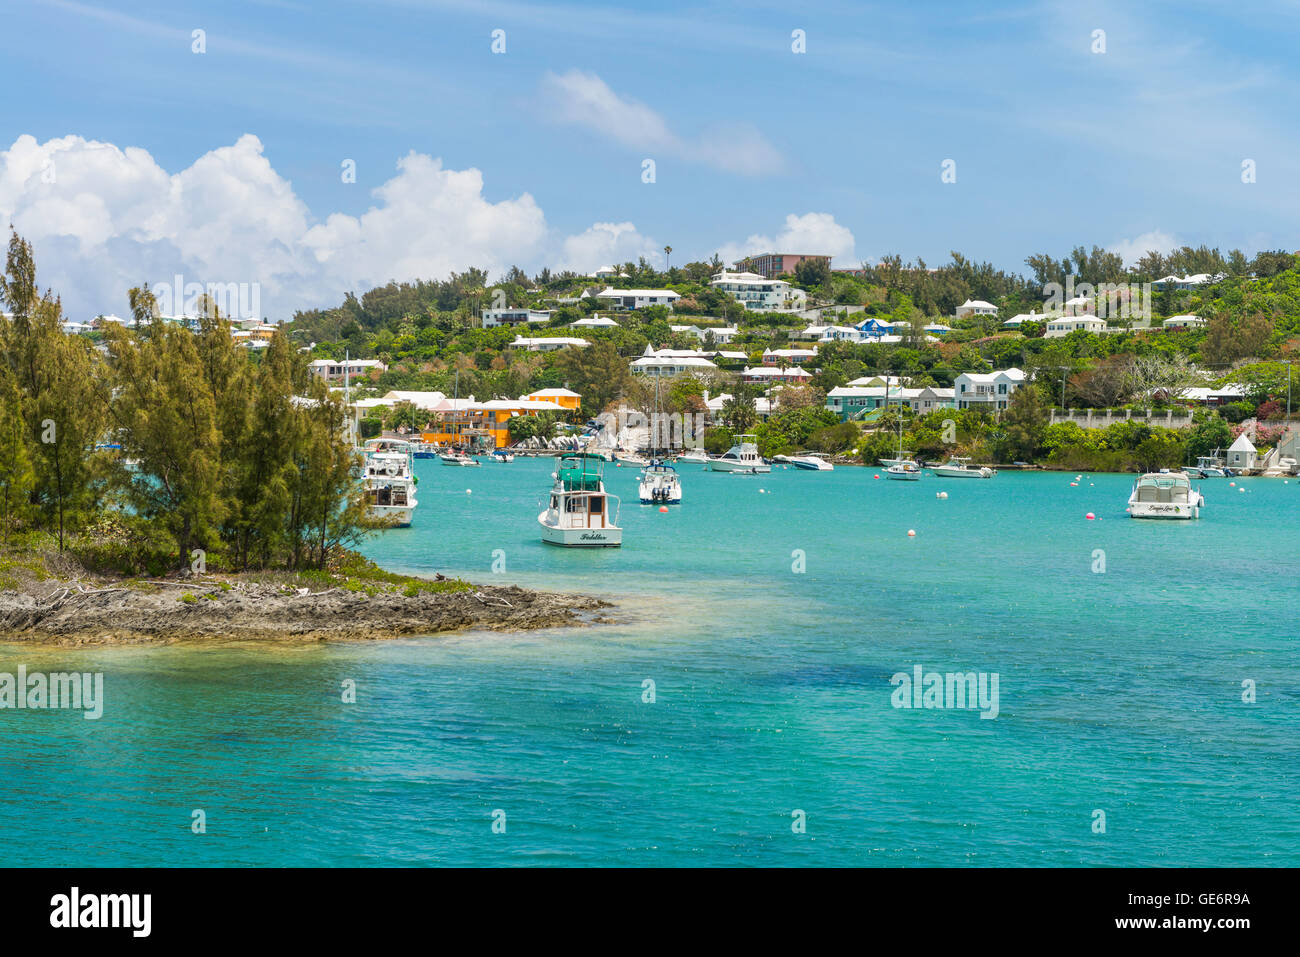 Entrance to Jew's Bay, Bermuda, with the Fairmont Southampton luxury resort visible at the top of the hill. - Stock Image